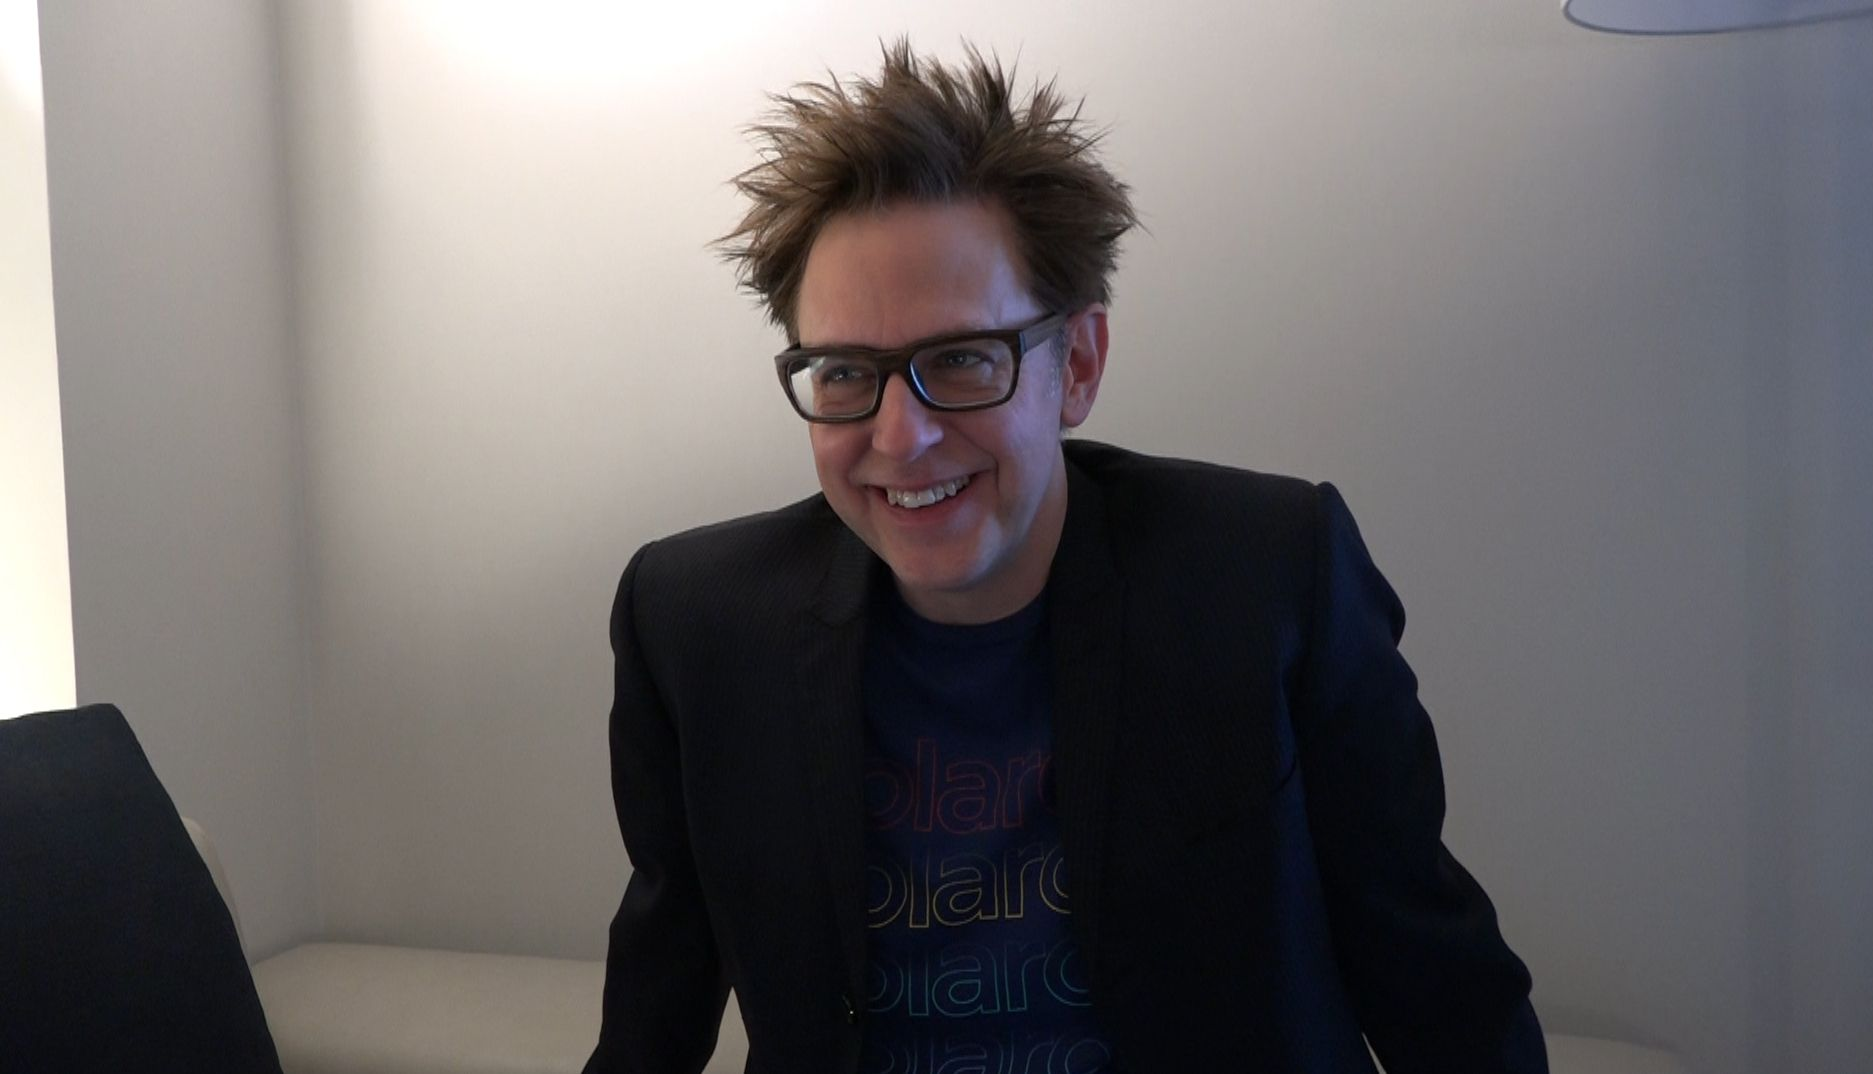 james gunn - photo #9